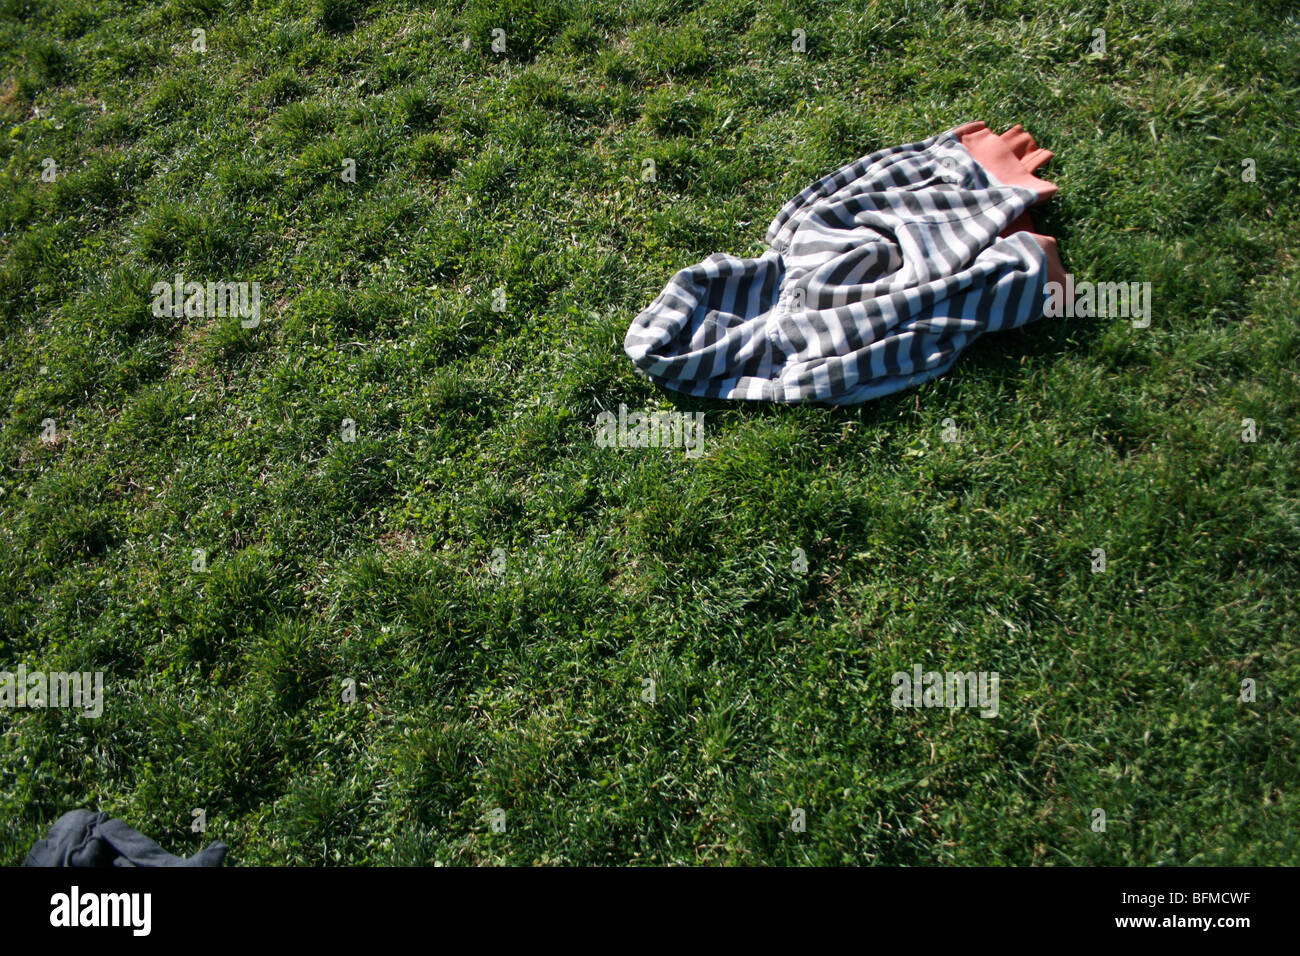 a jacket left laying in a grassy field - Stock Image